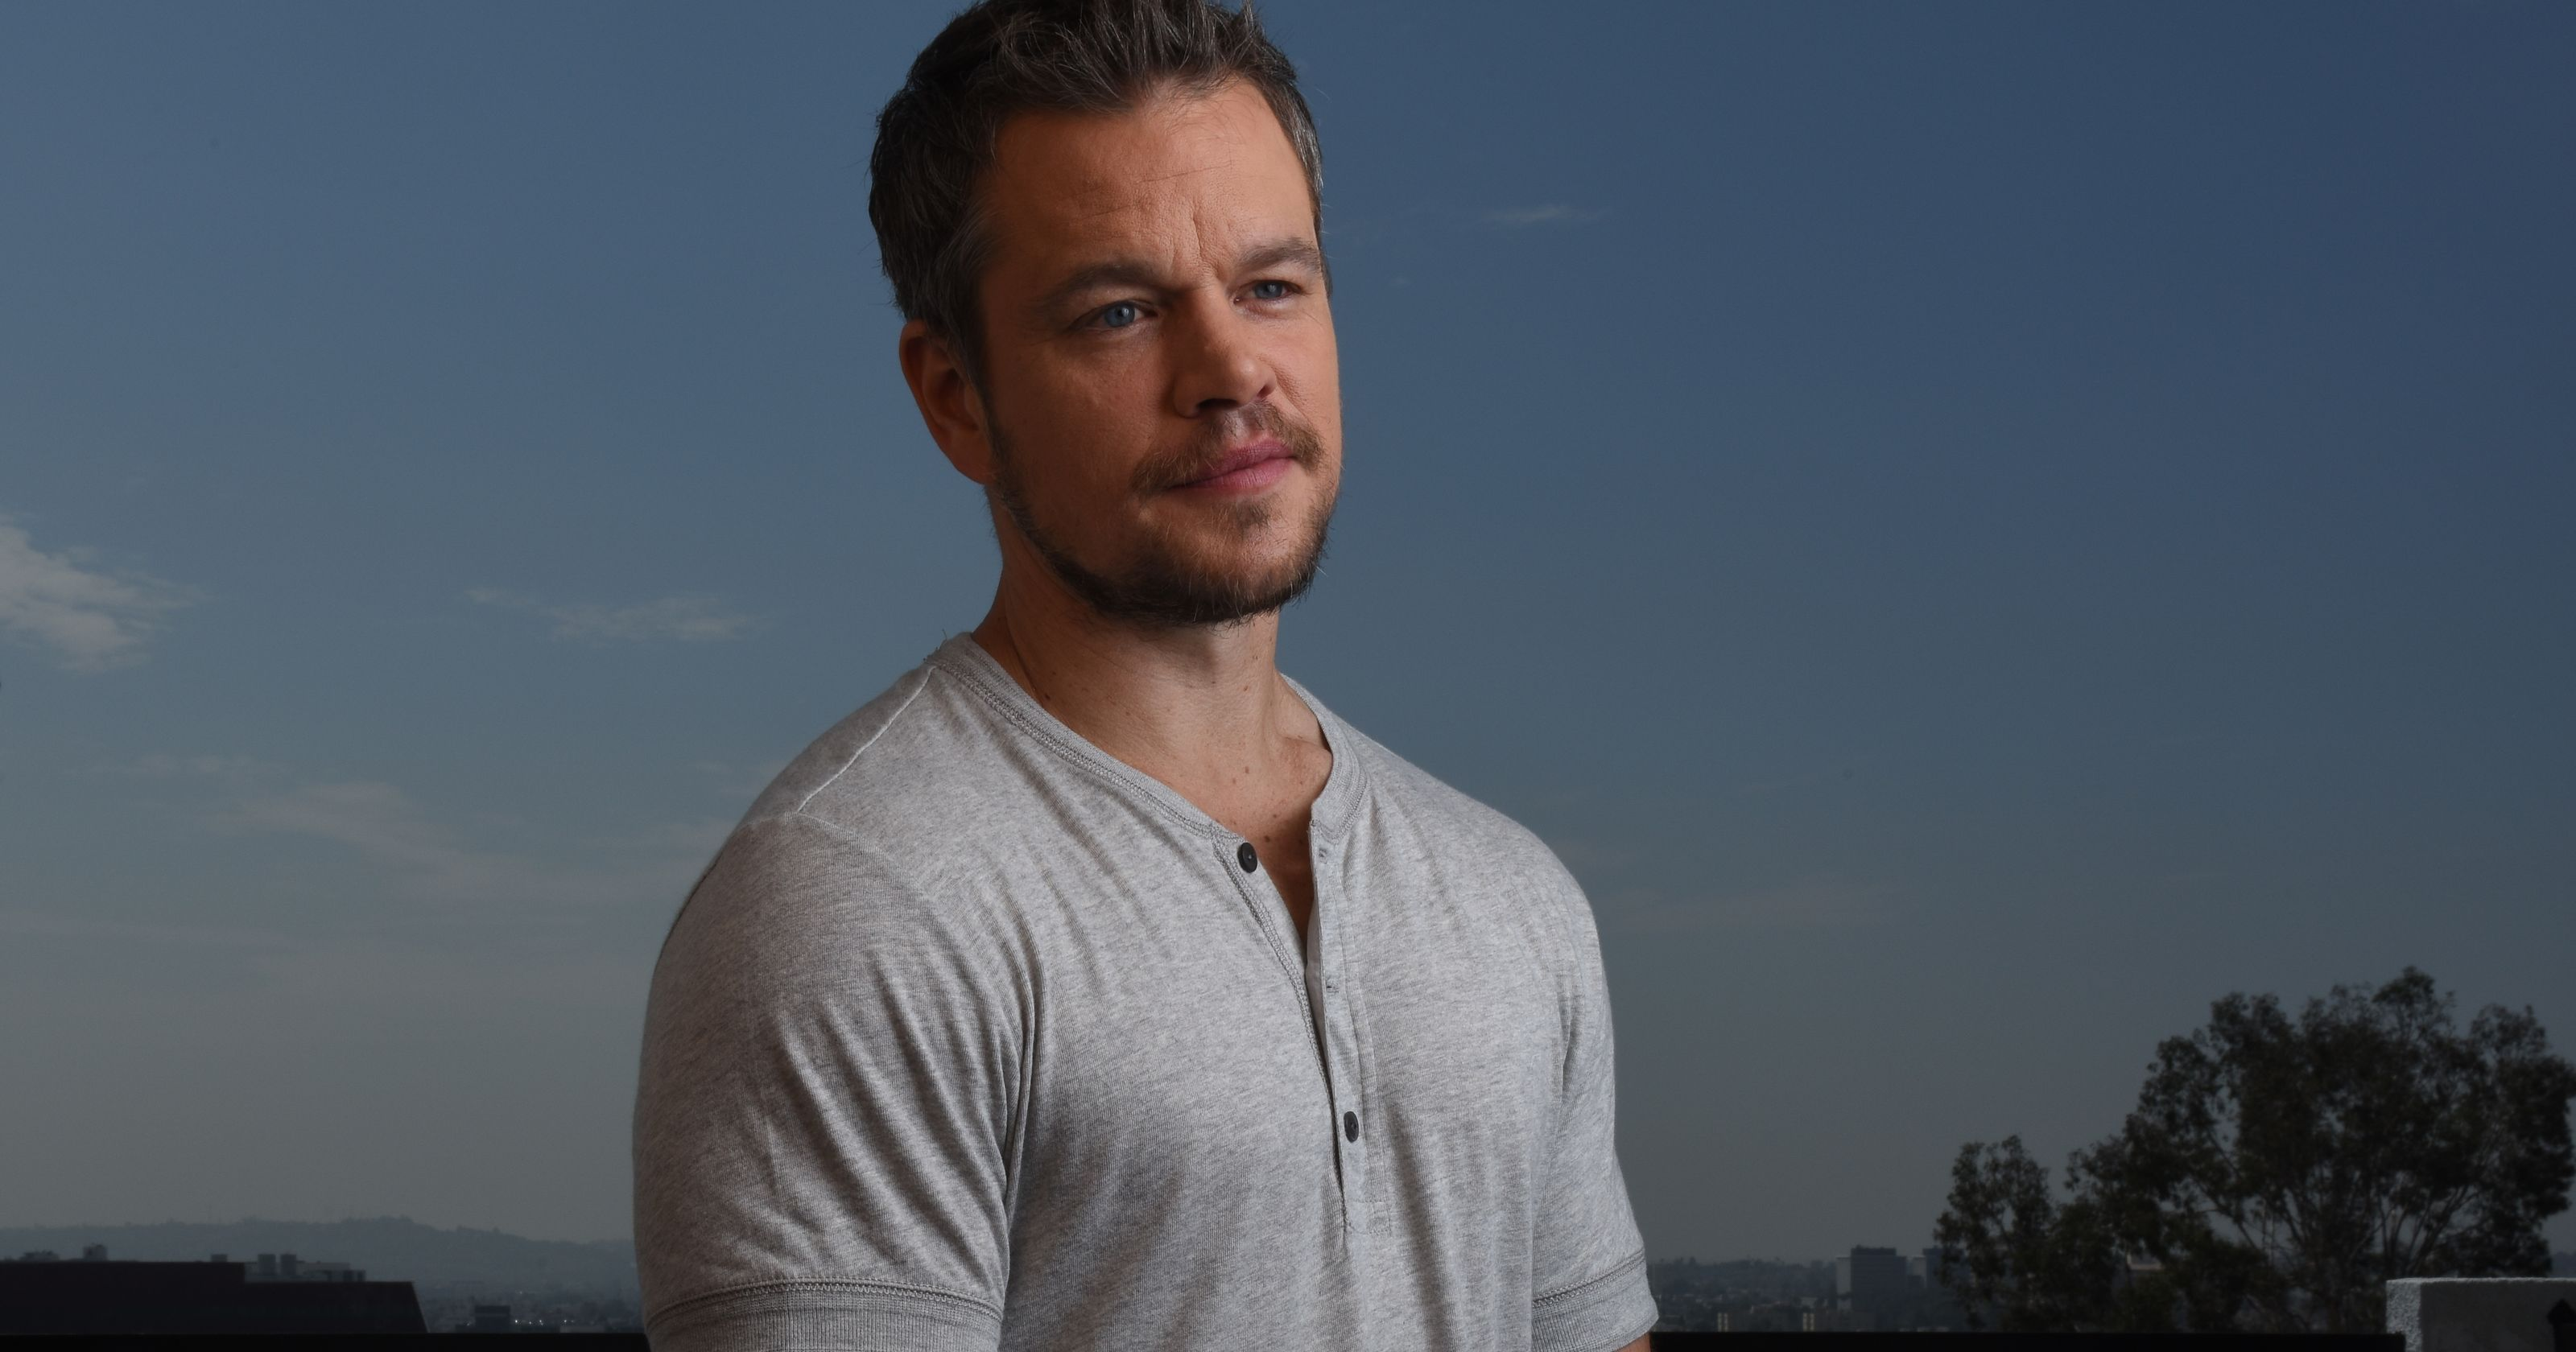 Matt Damon Wallpapers ...